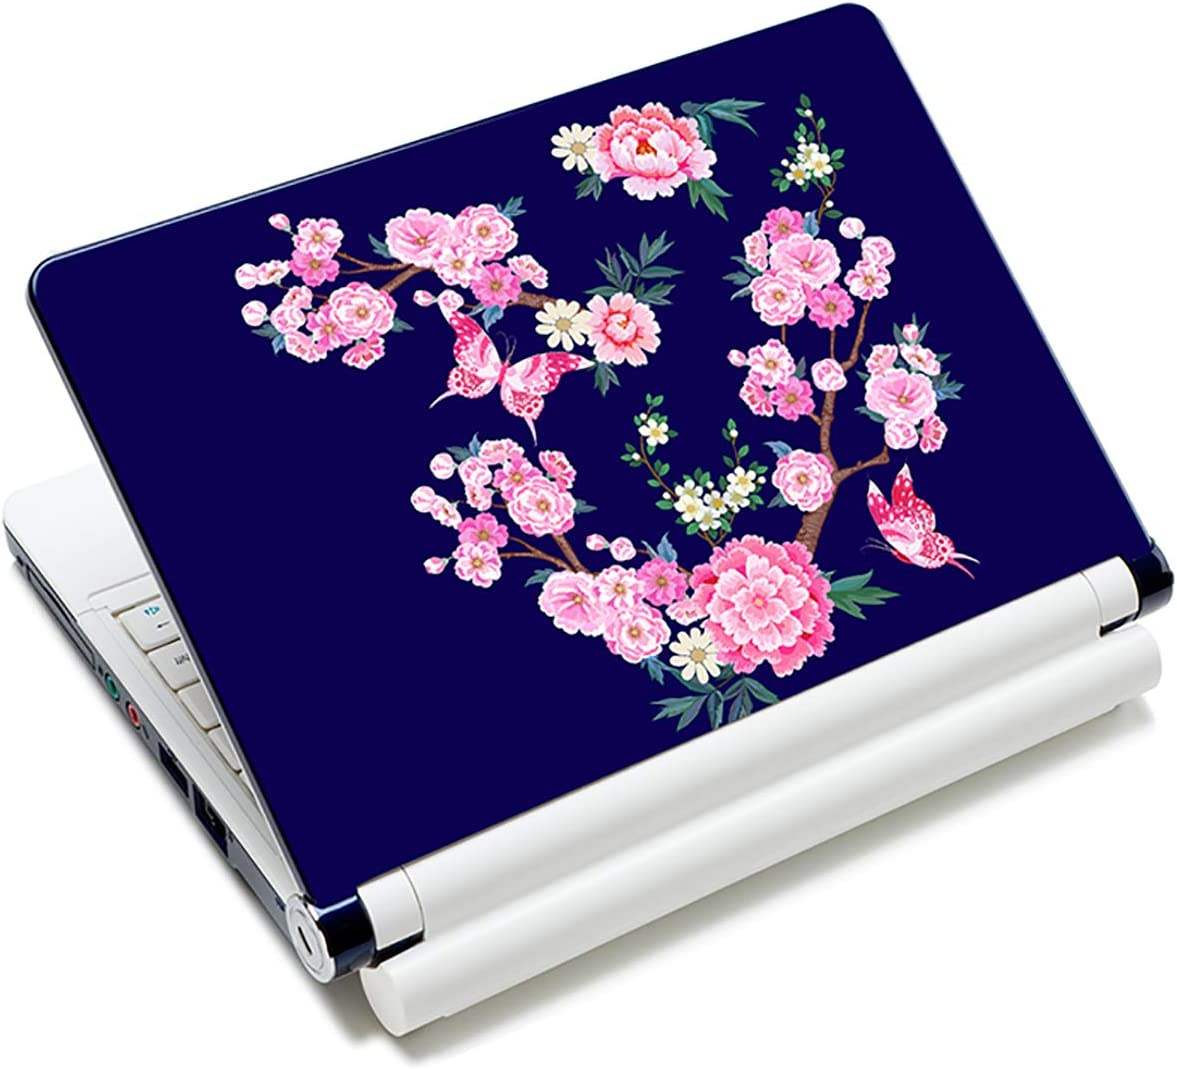 Laptop Stickers Decal,12 13 14 15 15.6 inches Netbook Laptop Skin Sticker Reusable Protector Cover Case for Toshiba Hp Samsung Dell Apple Acer Leonovo Sony Asus Laptop Notebook (Butterfly & Flowers)